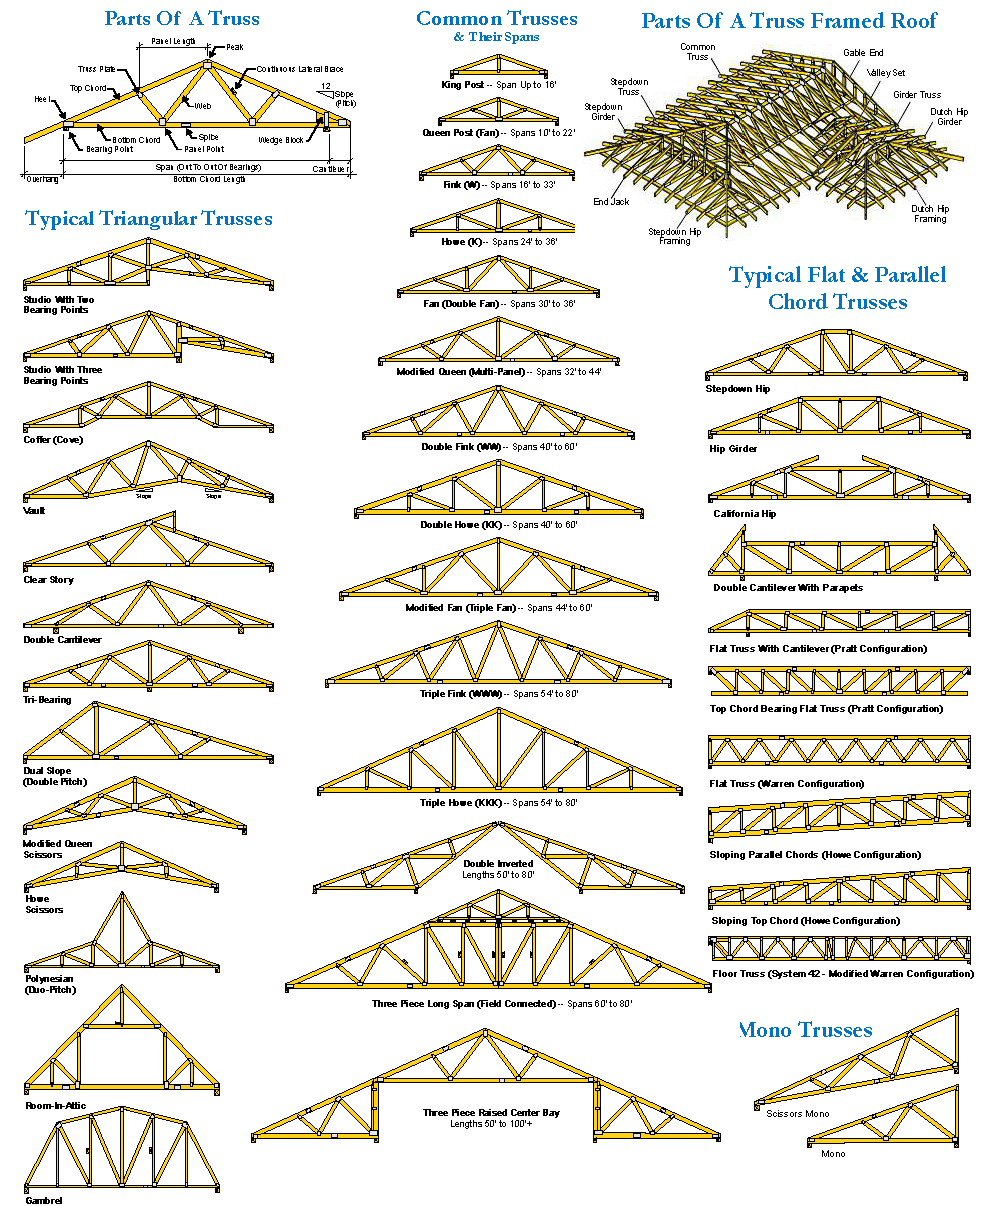 Pin by gеnevieve Таshia on bombius pinterest construction roof